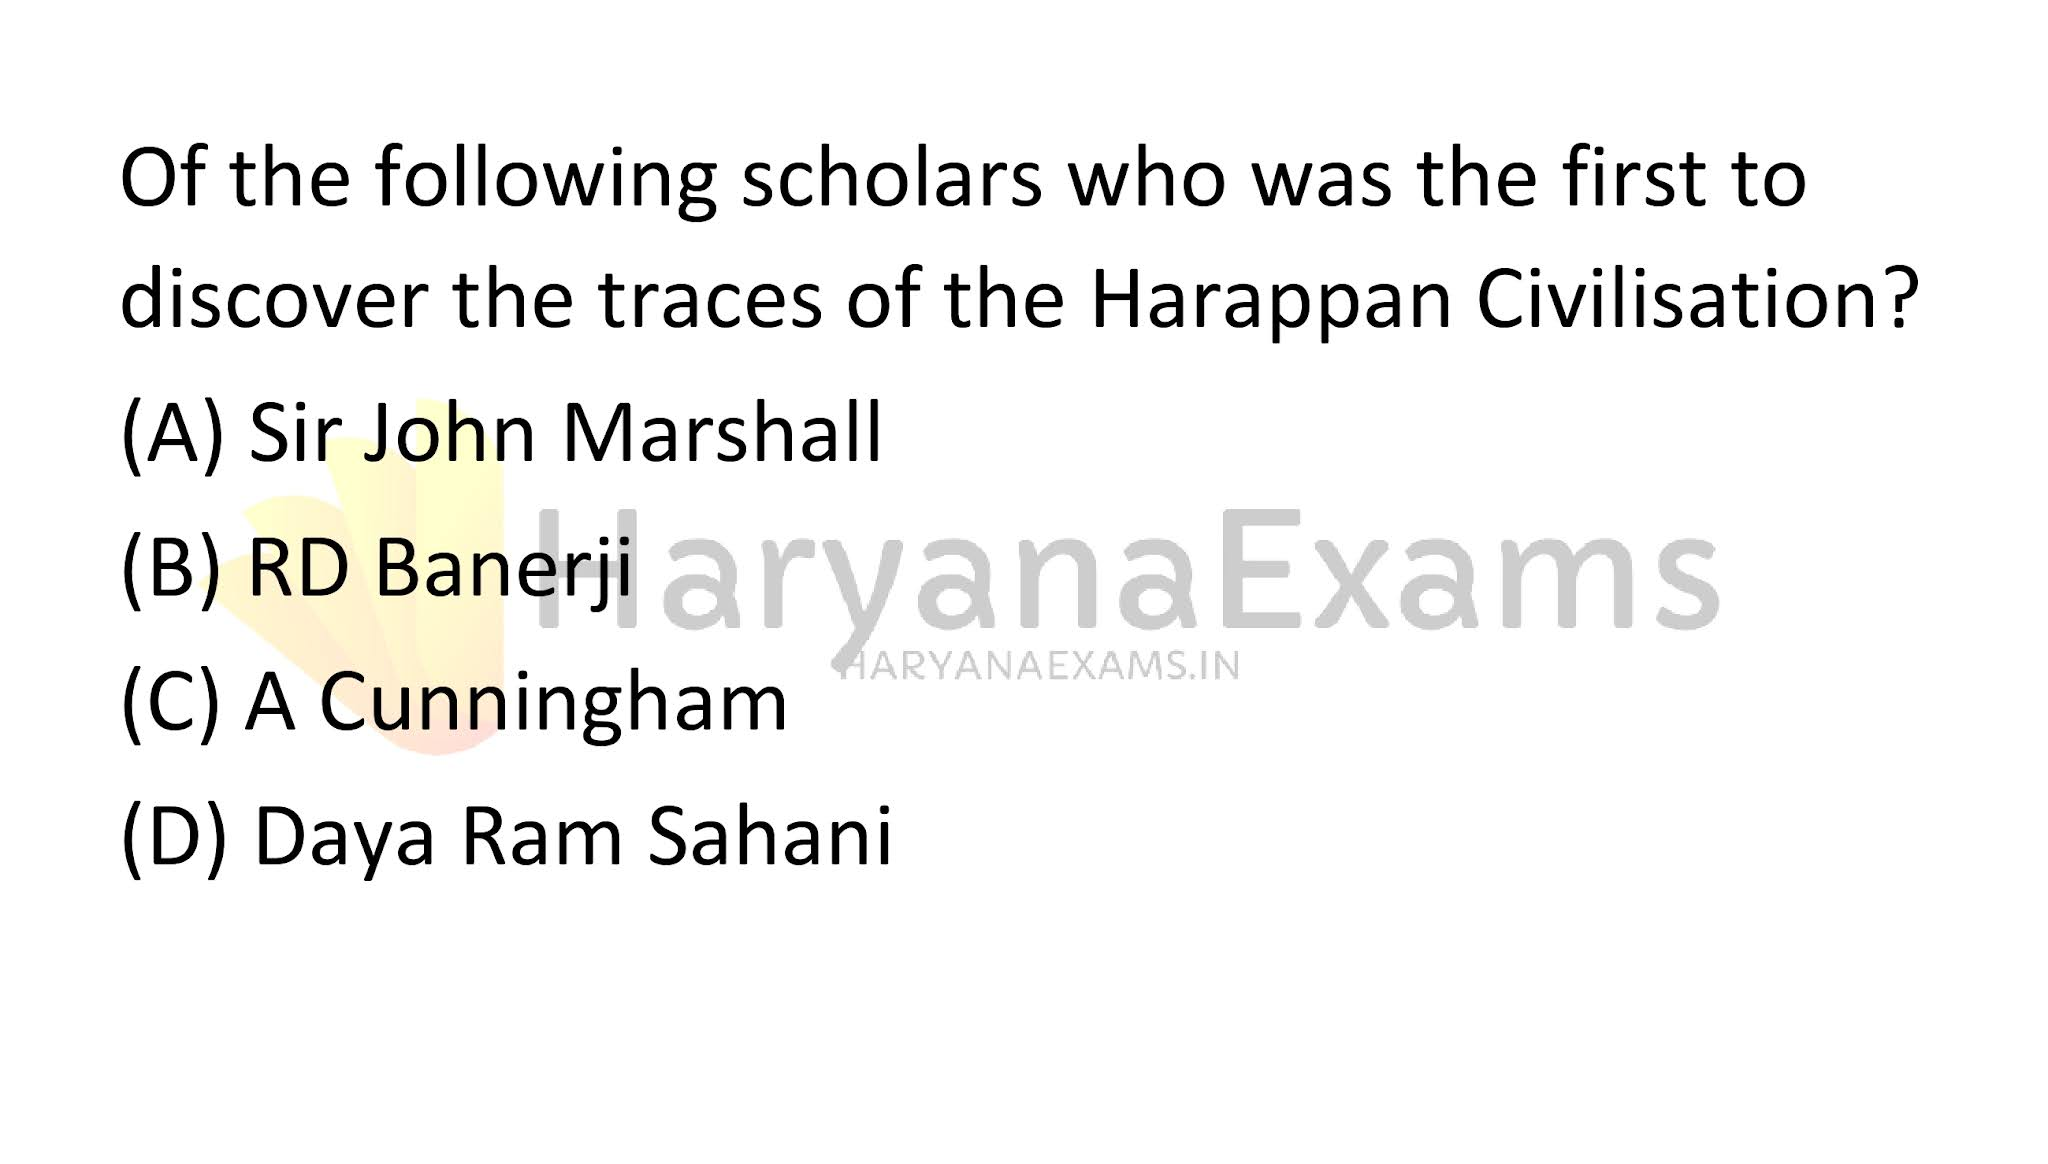 Of the following scholars who was the first to discover the traces of the Harappan Civilisation?